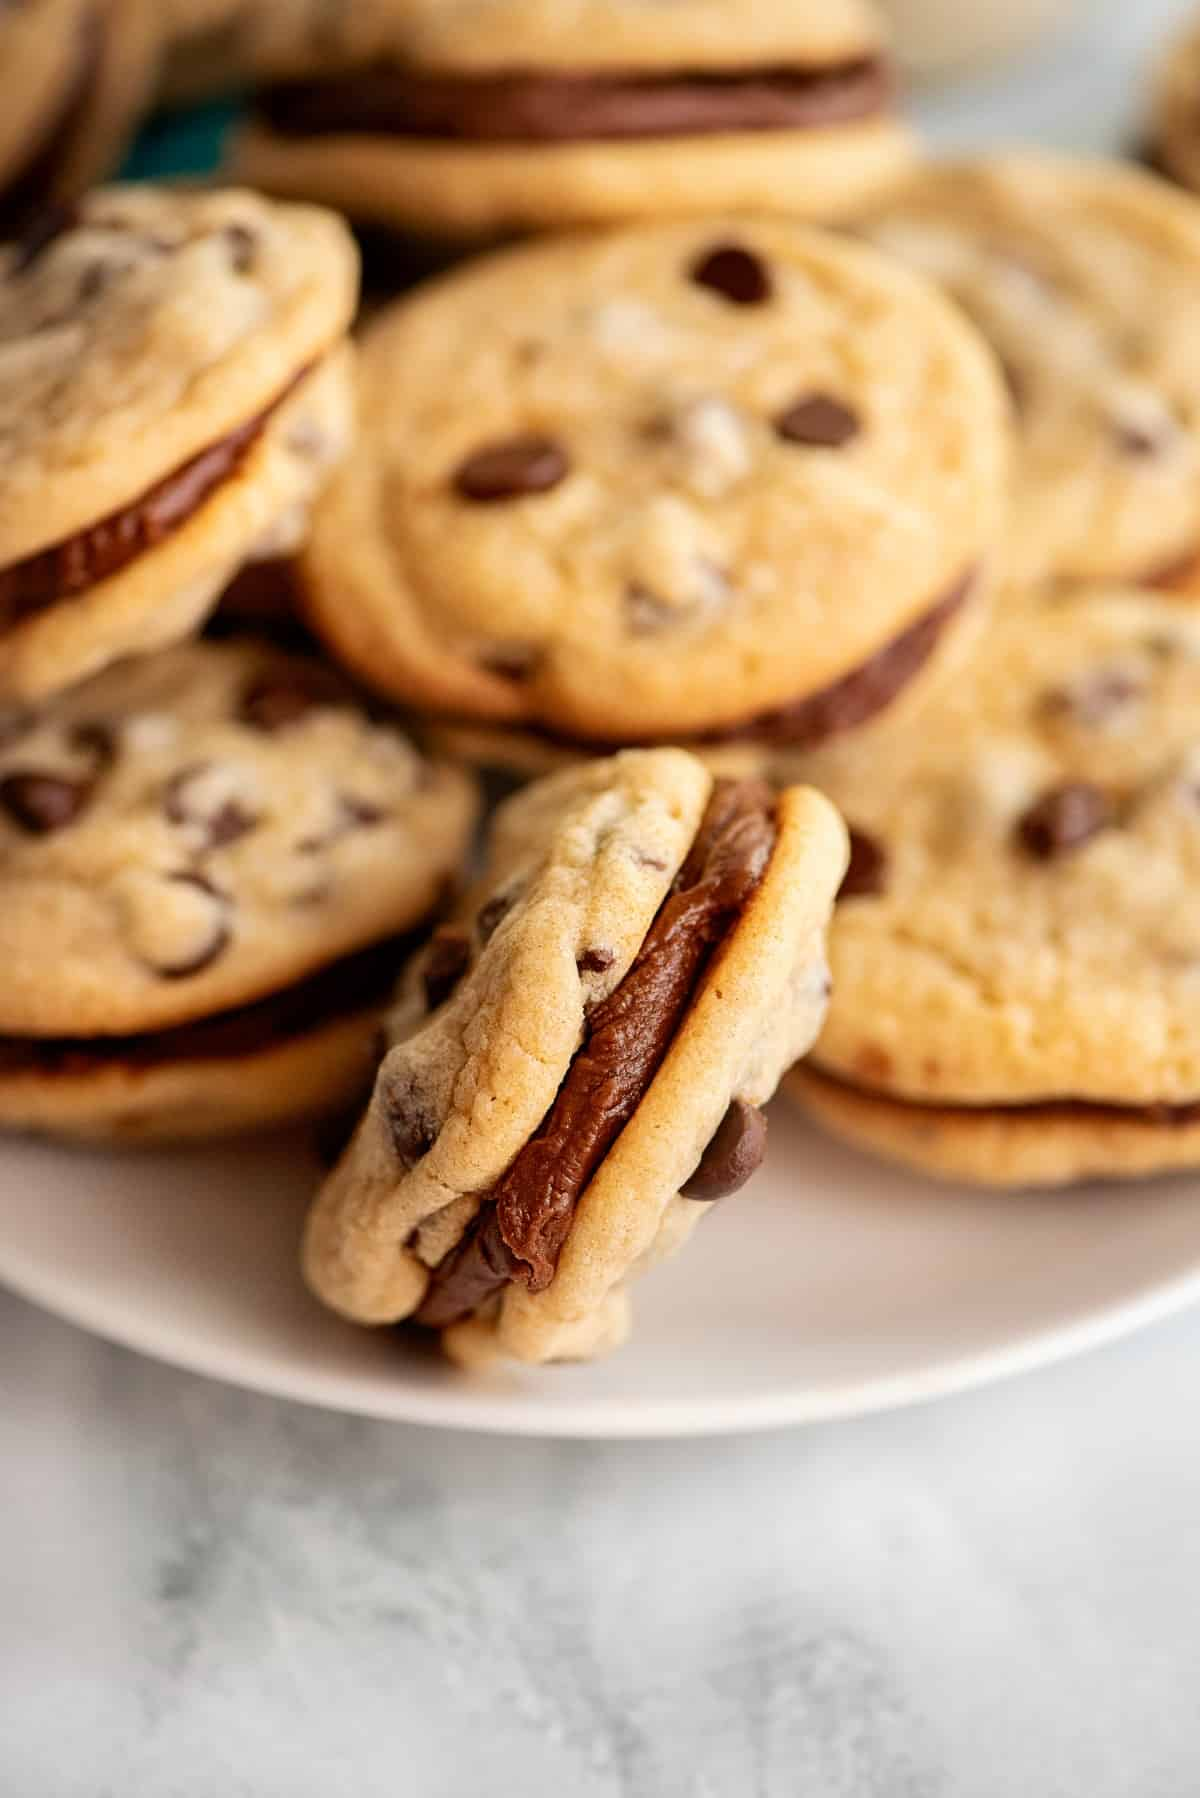 Chocolate chip sandwich cookies with fudge filling.